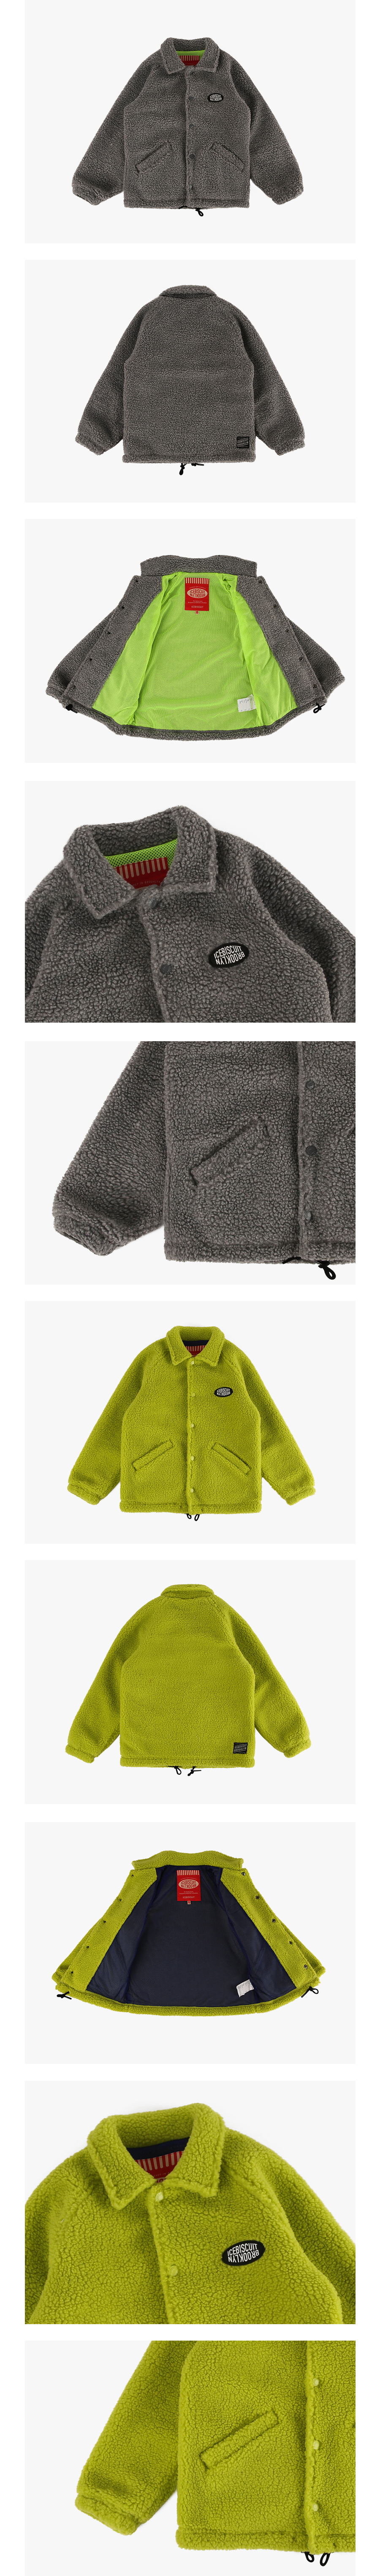 Icebiscuit fleece coach jacket 상세 이미지